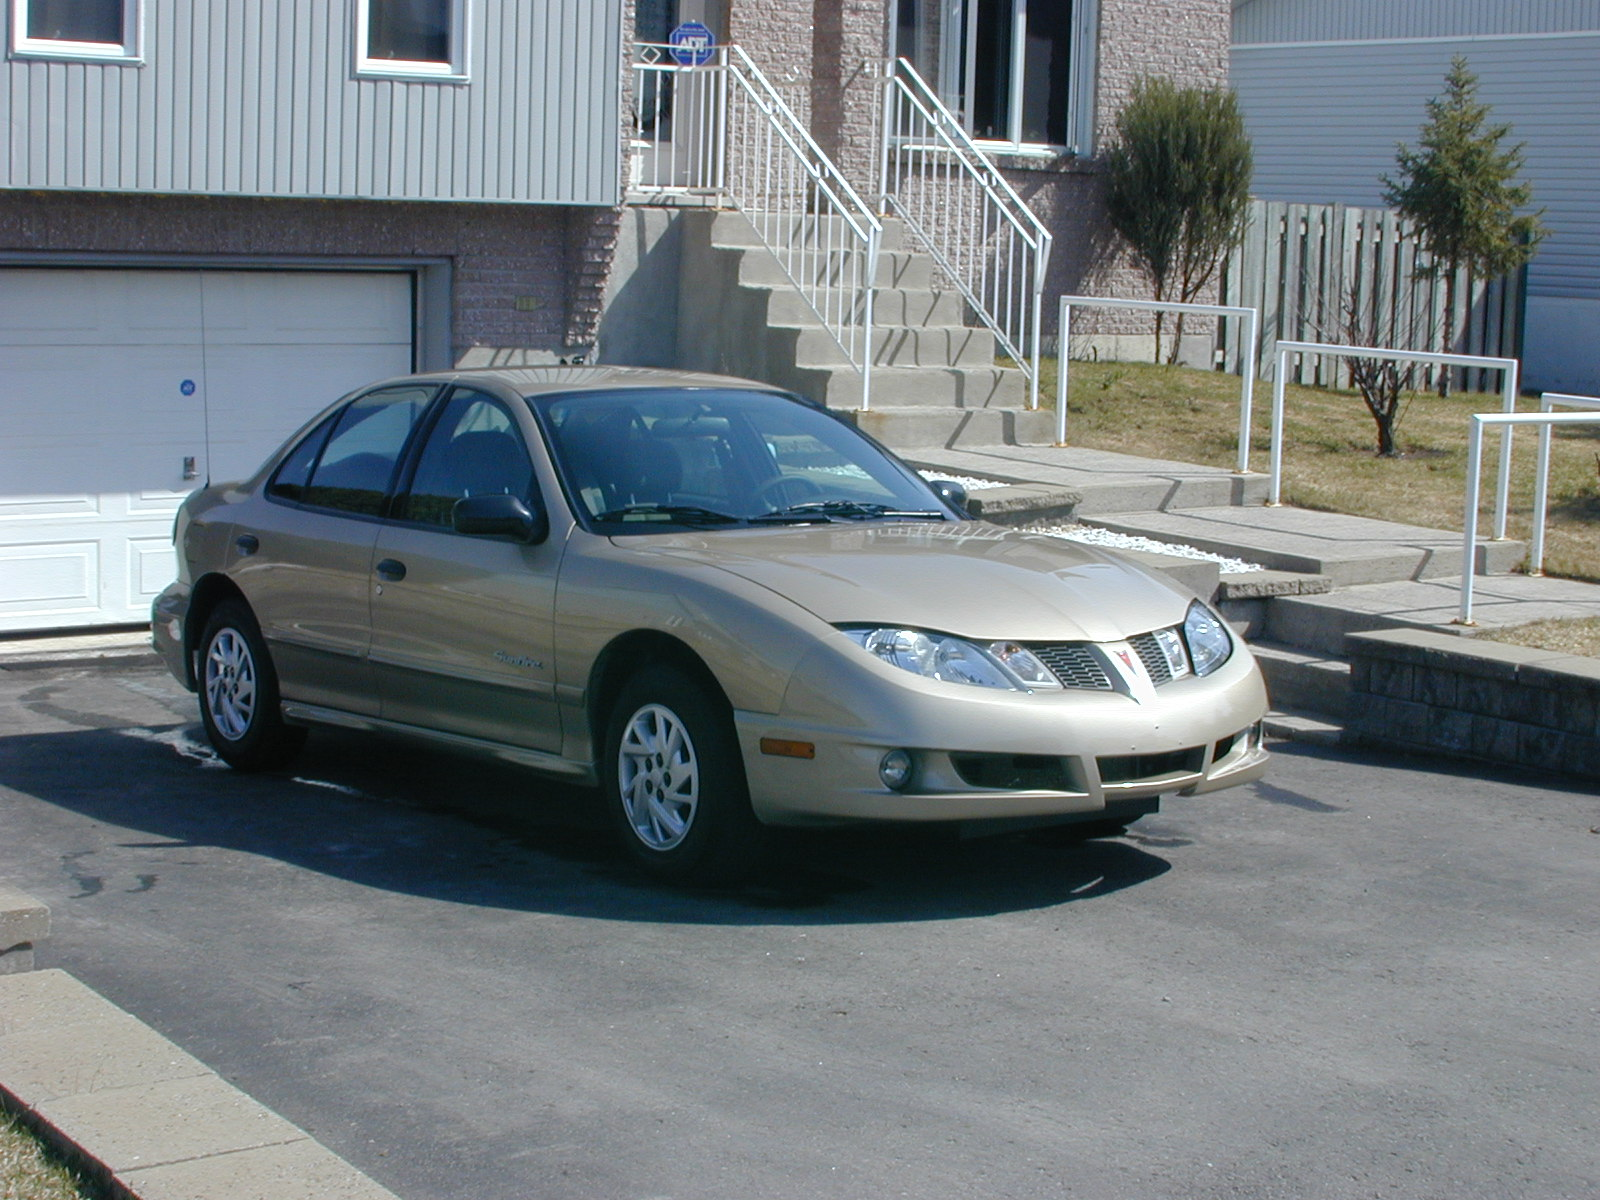 2005 pontiac sunfire exterior pictures cargurus. Black Bedroom Furniture Sets. Home Design Ideas